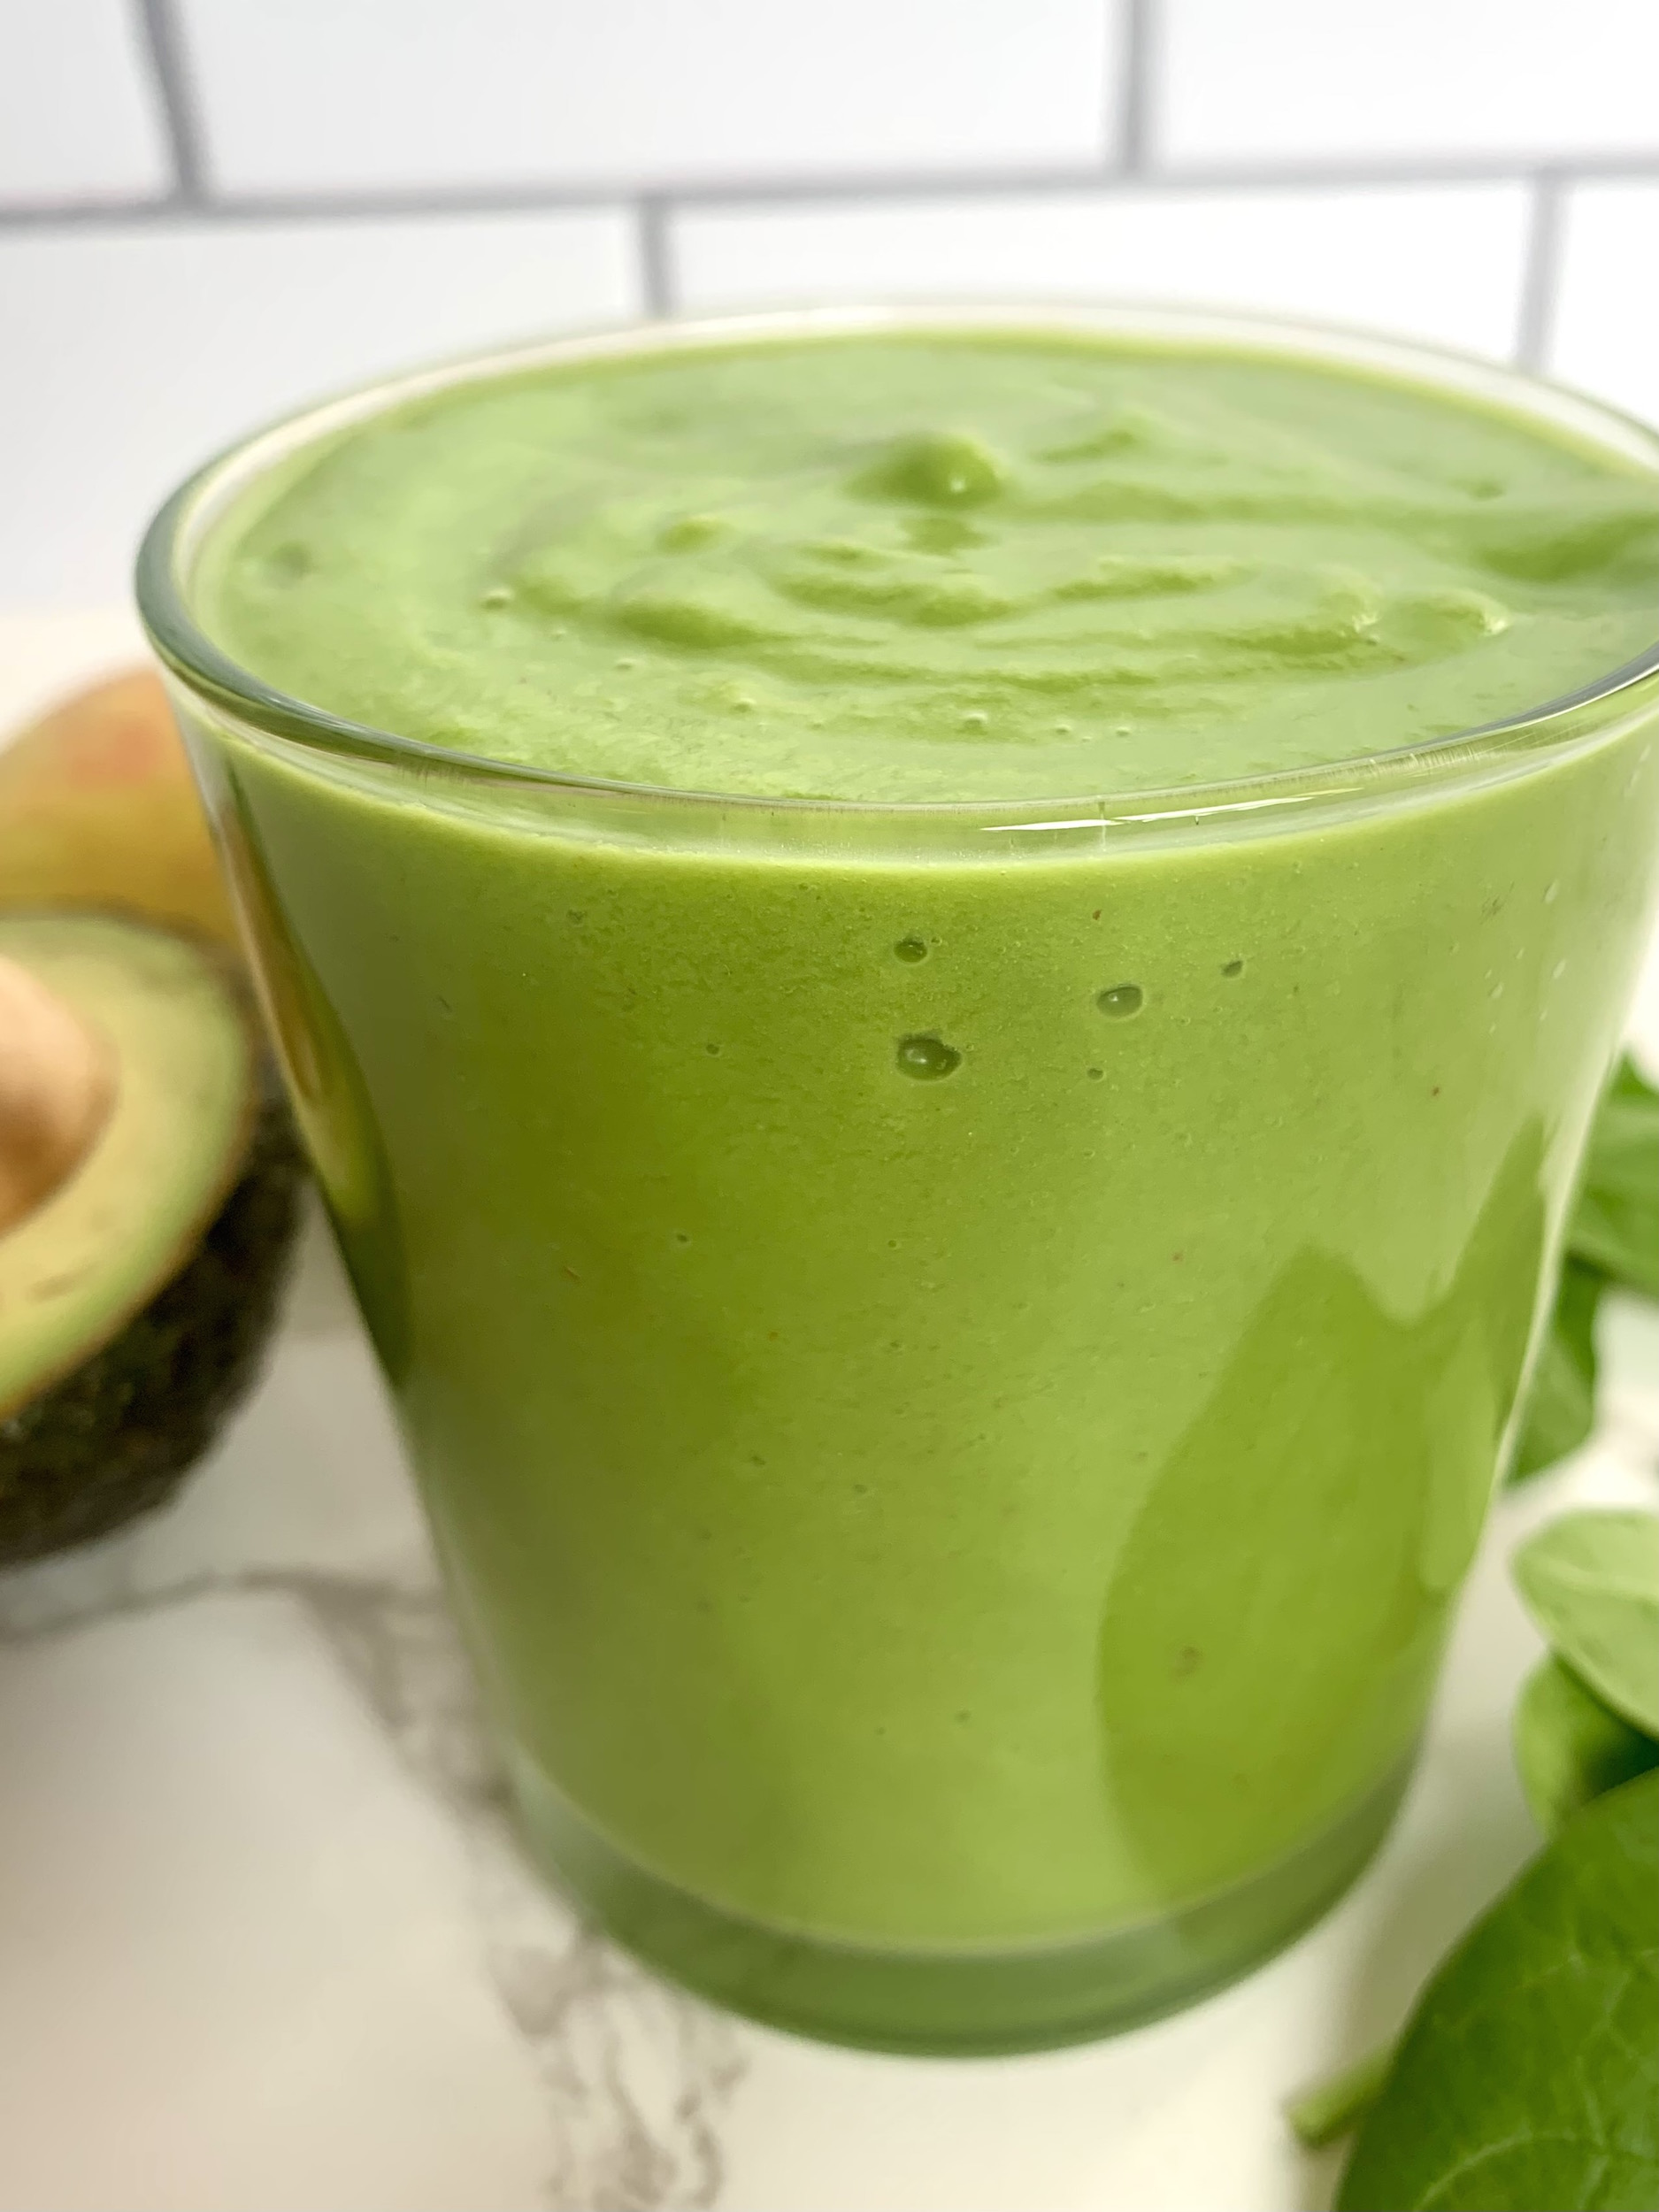 Glass full of green machine smoothie with avocado, apple and spinach leaves in the background